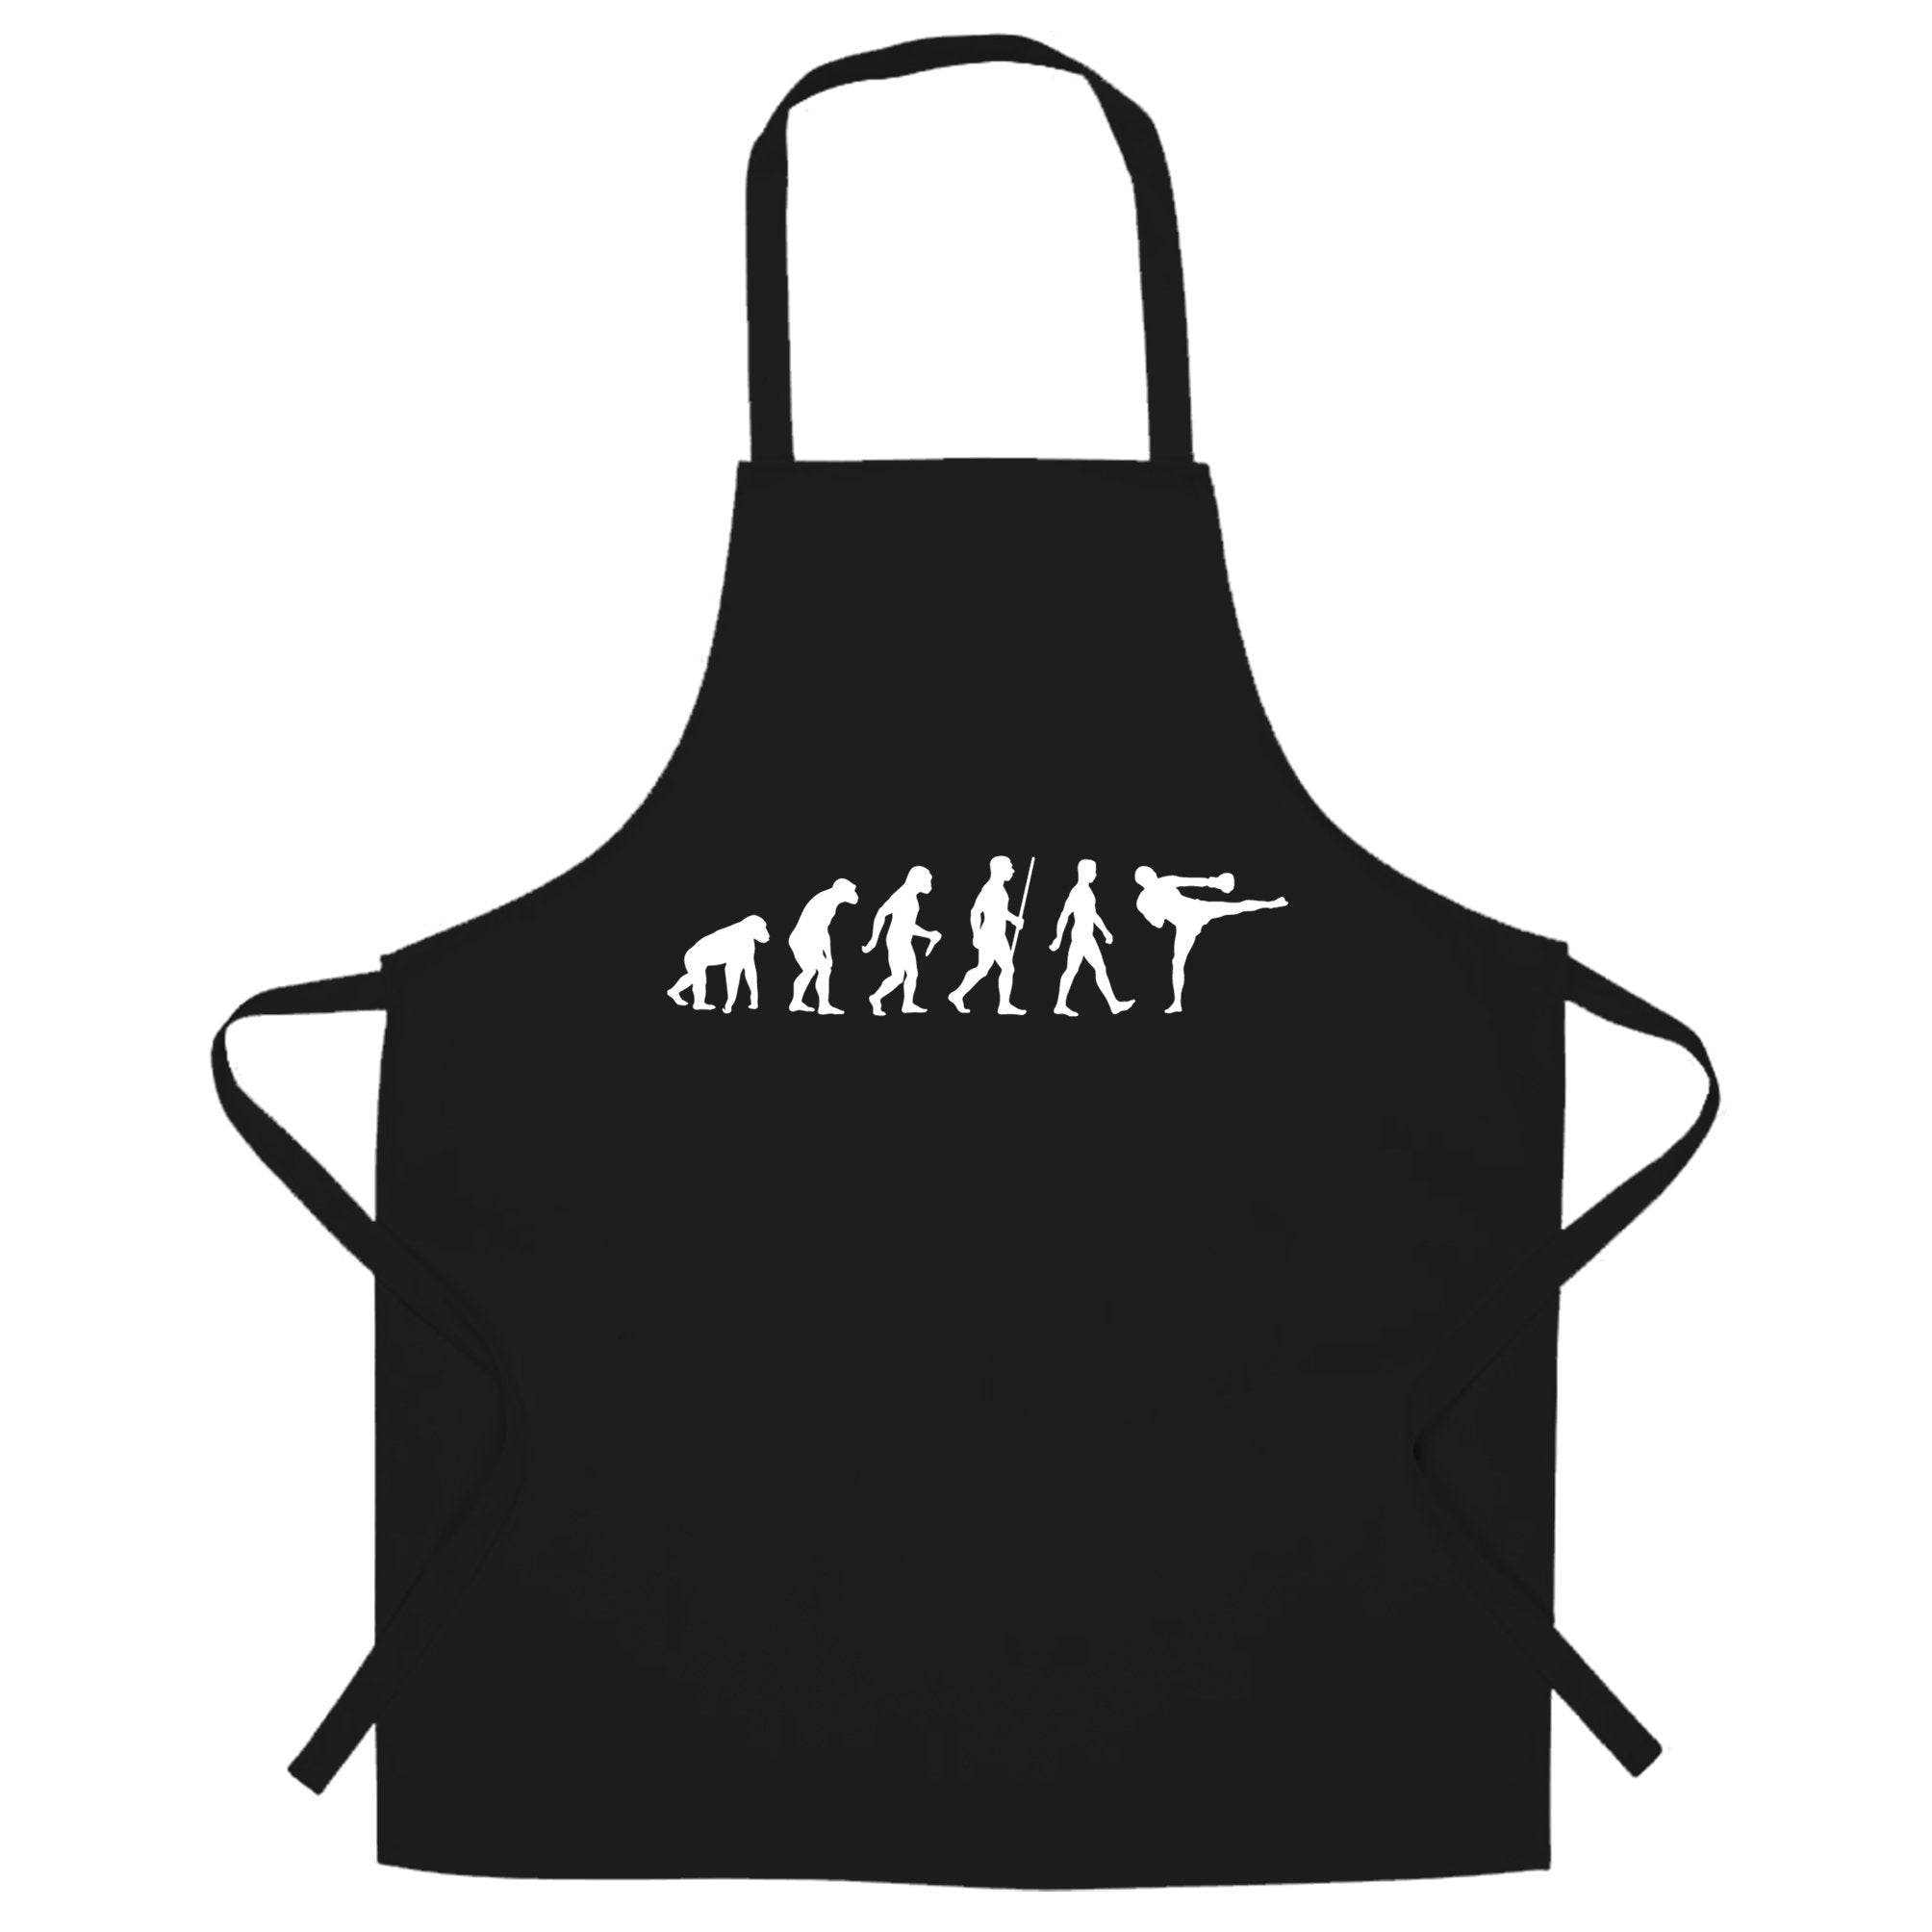 Kickboxing Chef's Apron The Evolution of Kickboxing